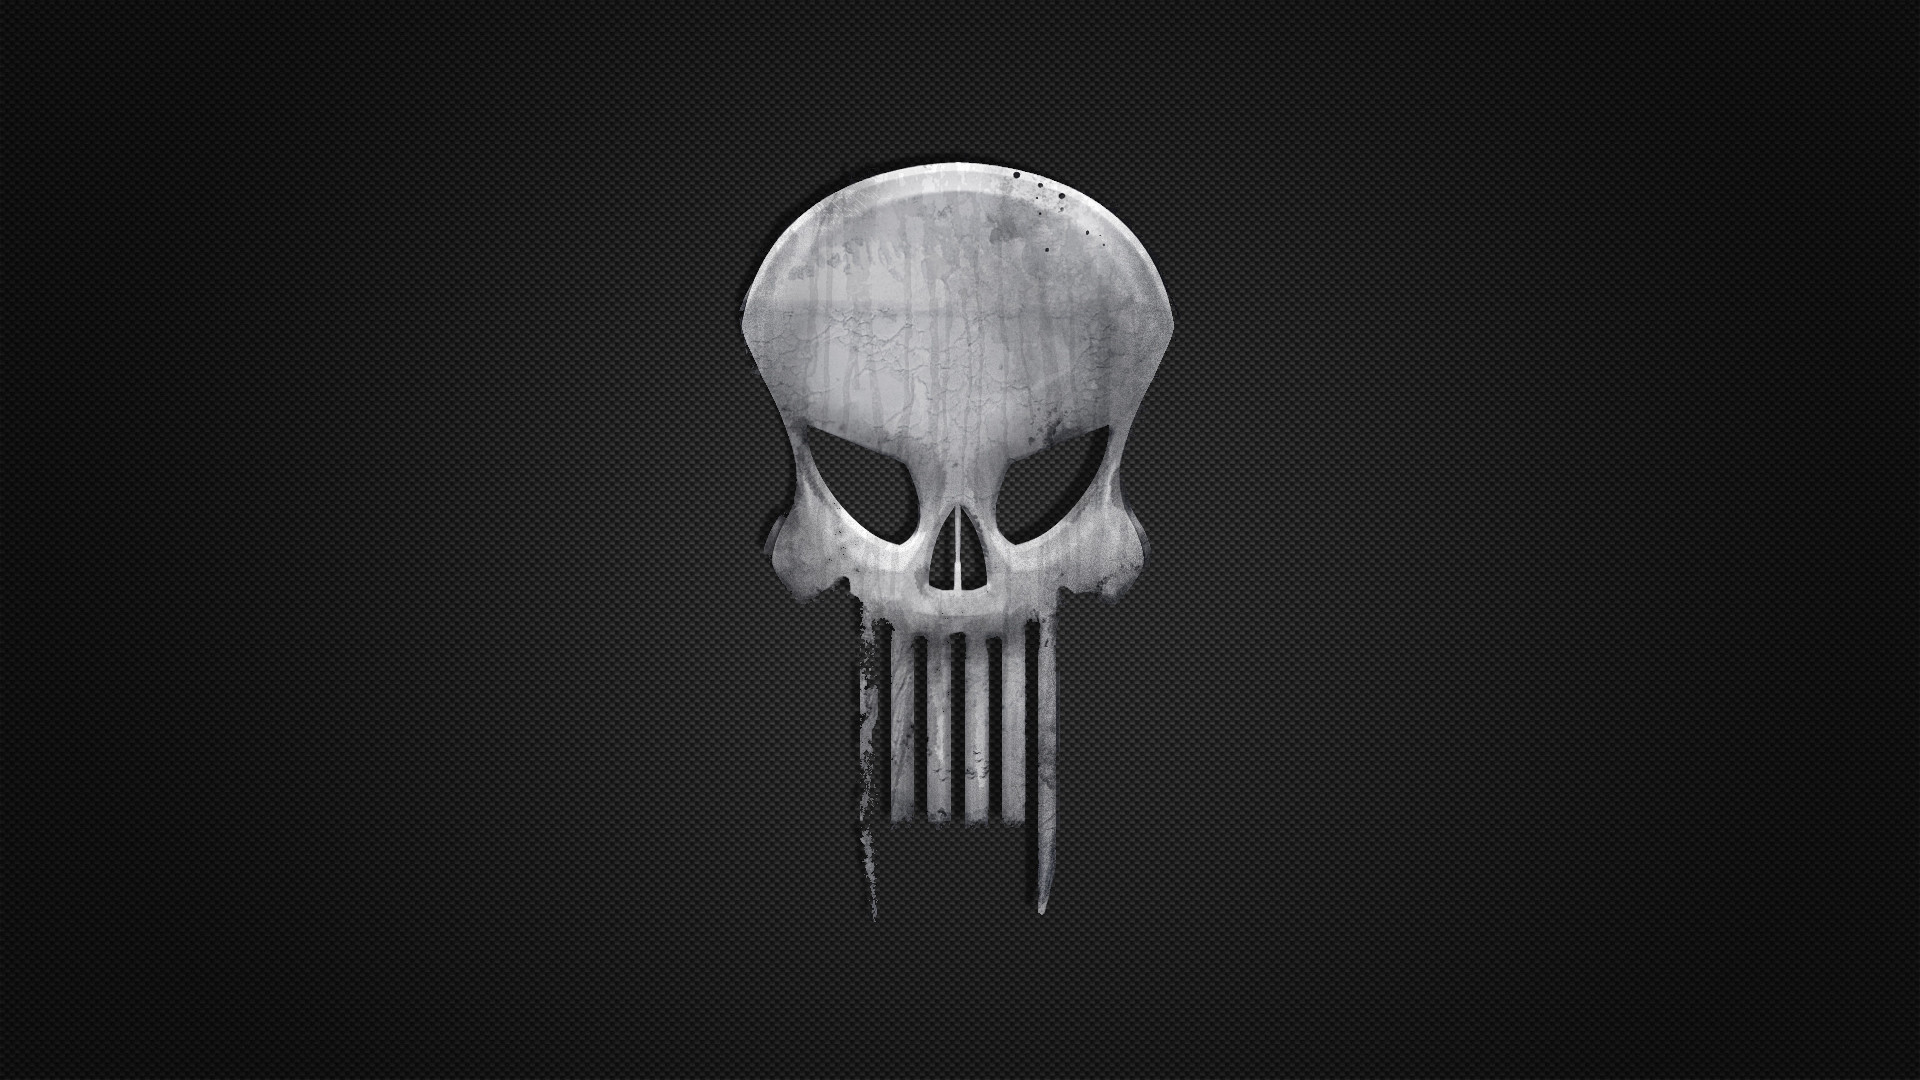 1920x1080 punisher wallpaper skull - www.high-definition-wallpaper.com